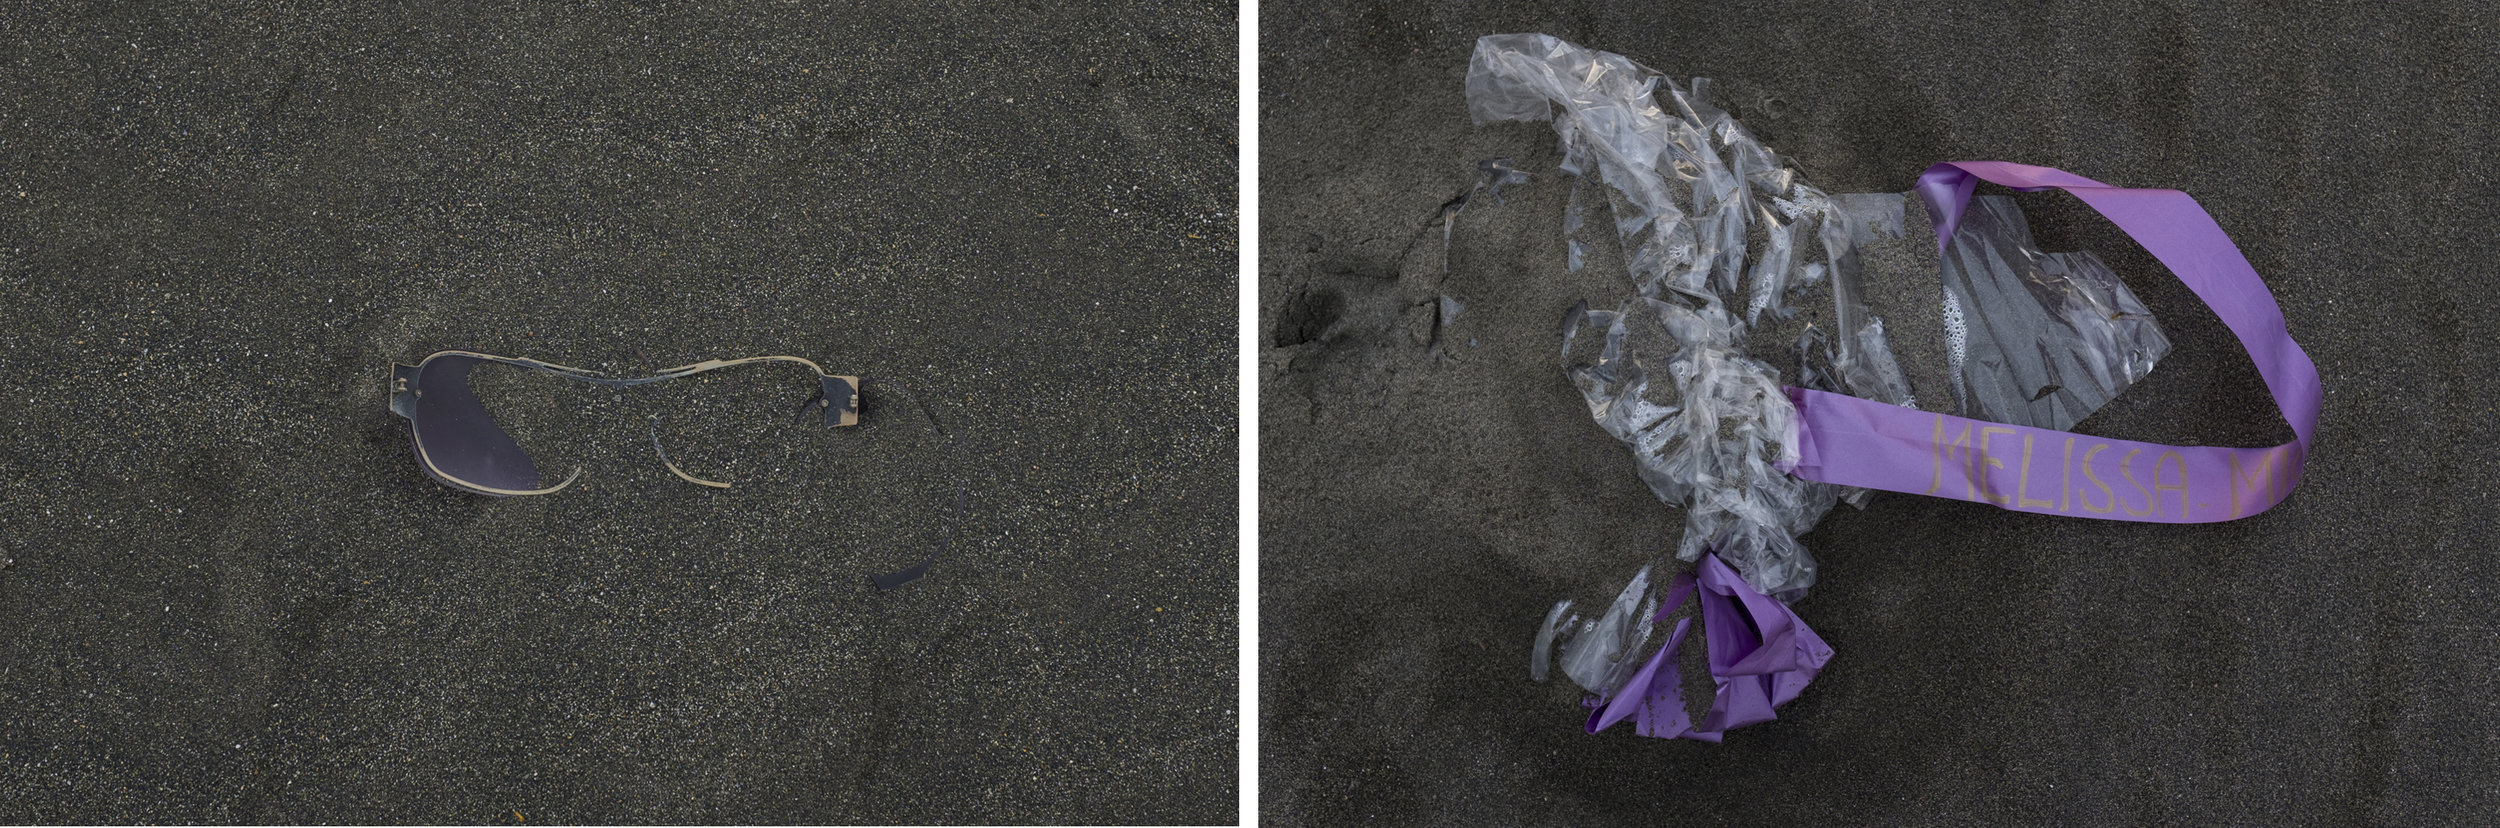 07_diptych_HumanTraces.jpg